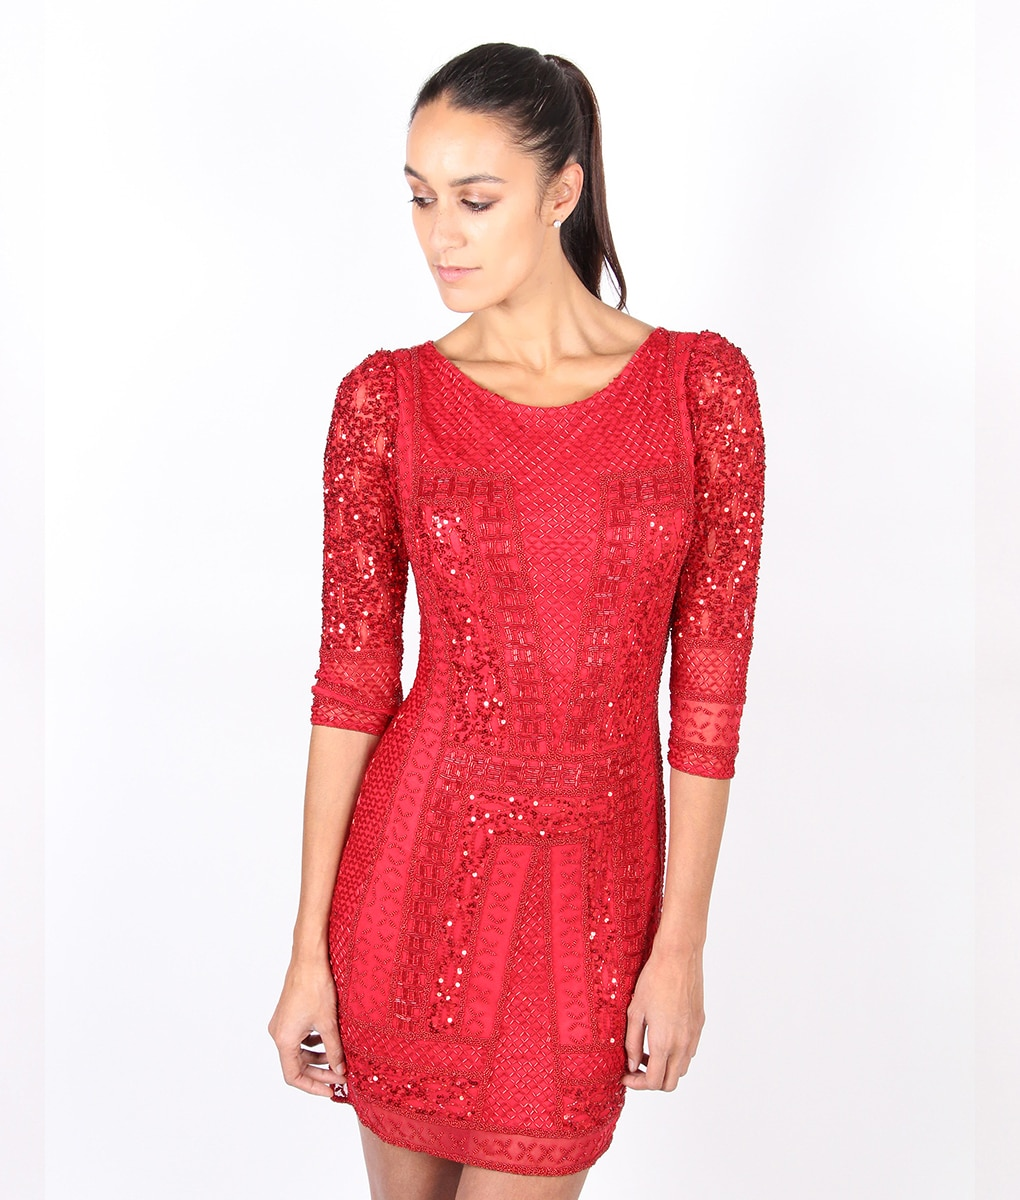 Scala Long Sleeved Red Sequin Dress  Alila